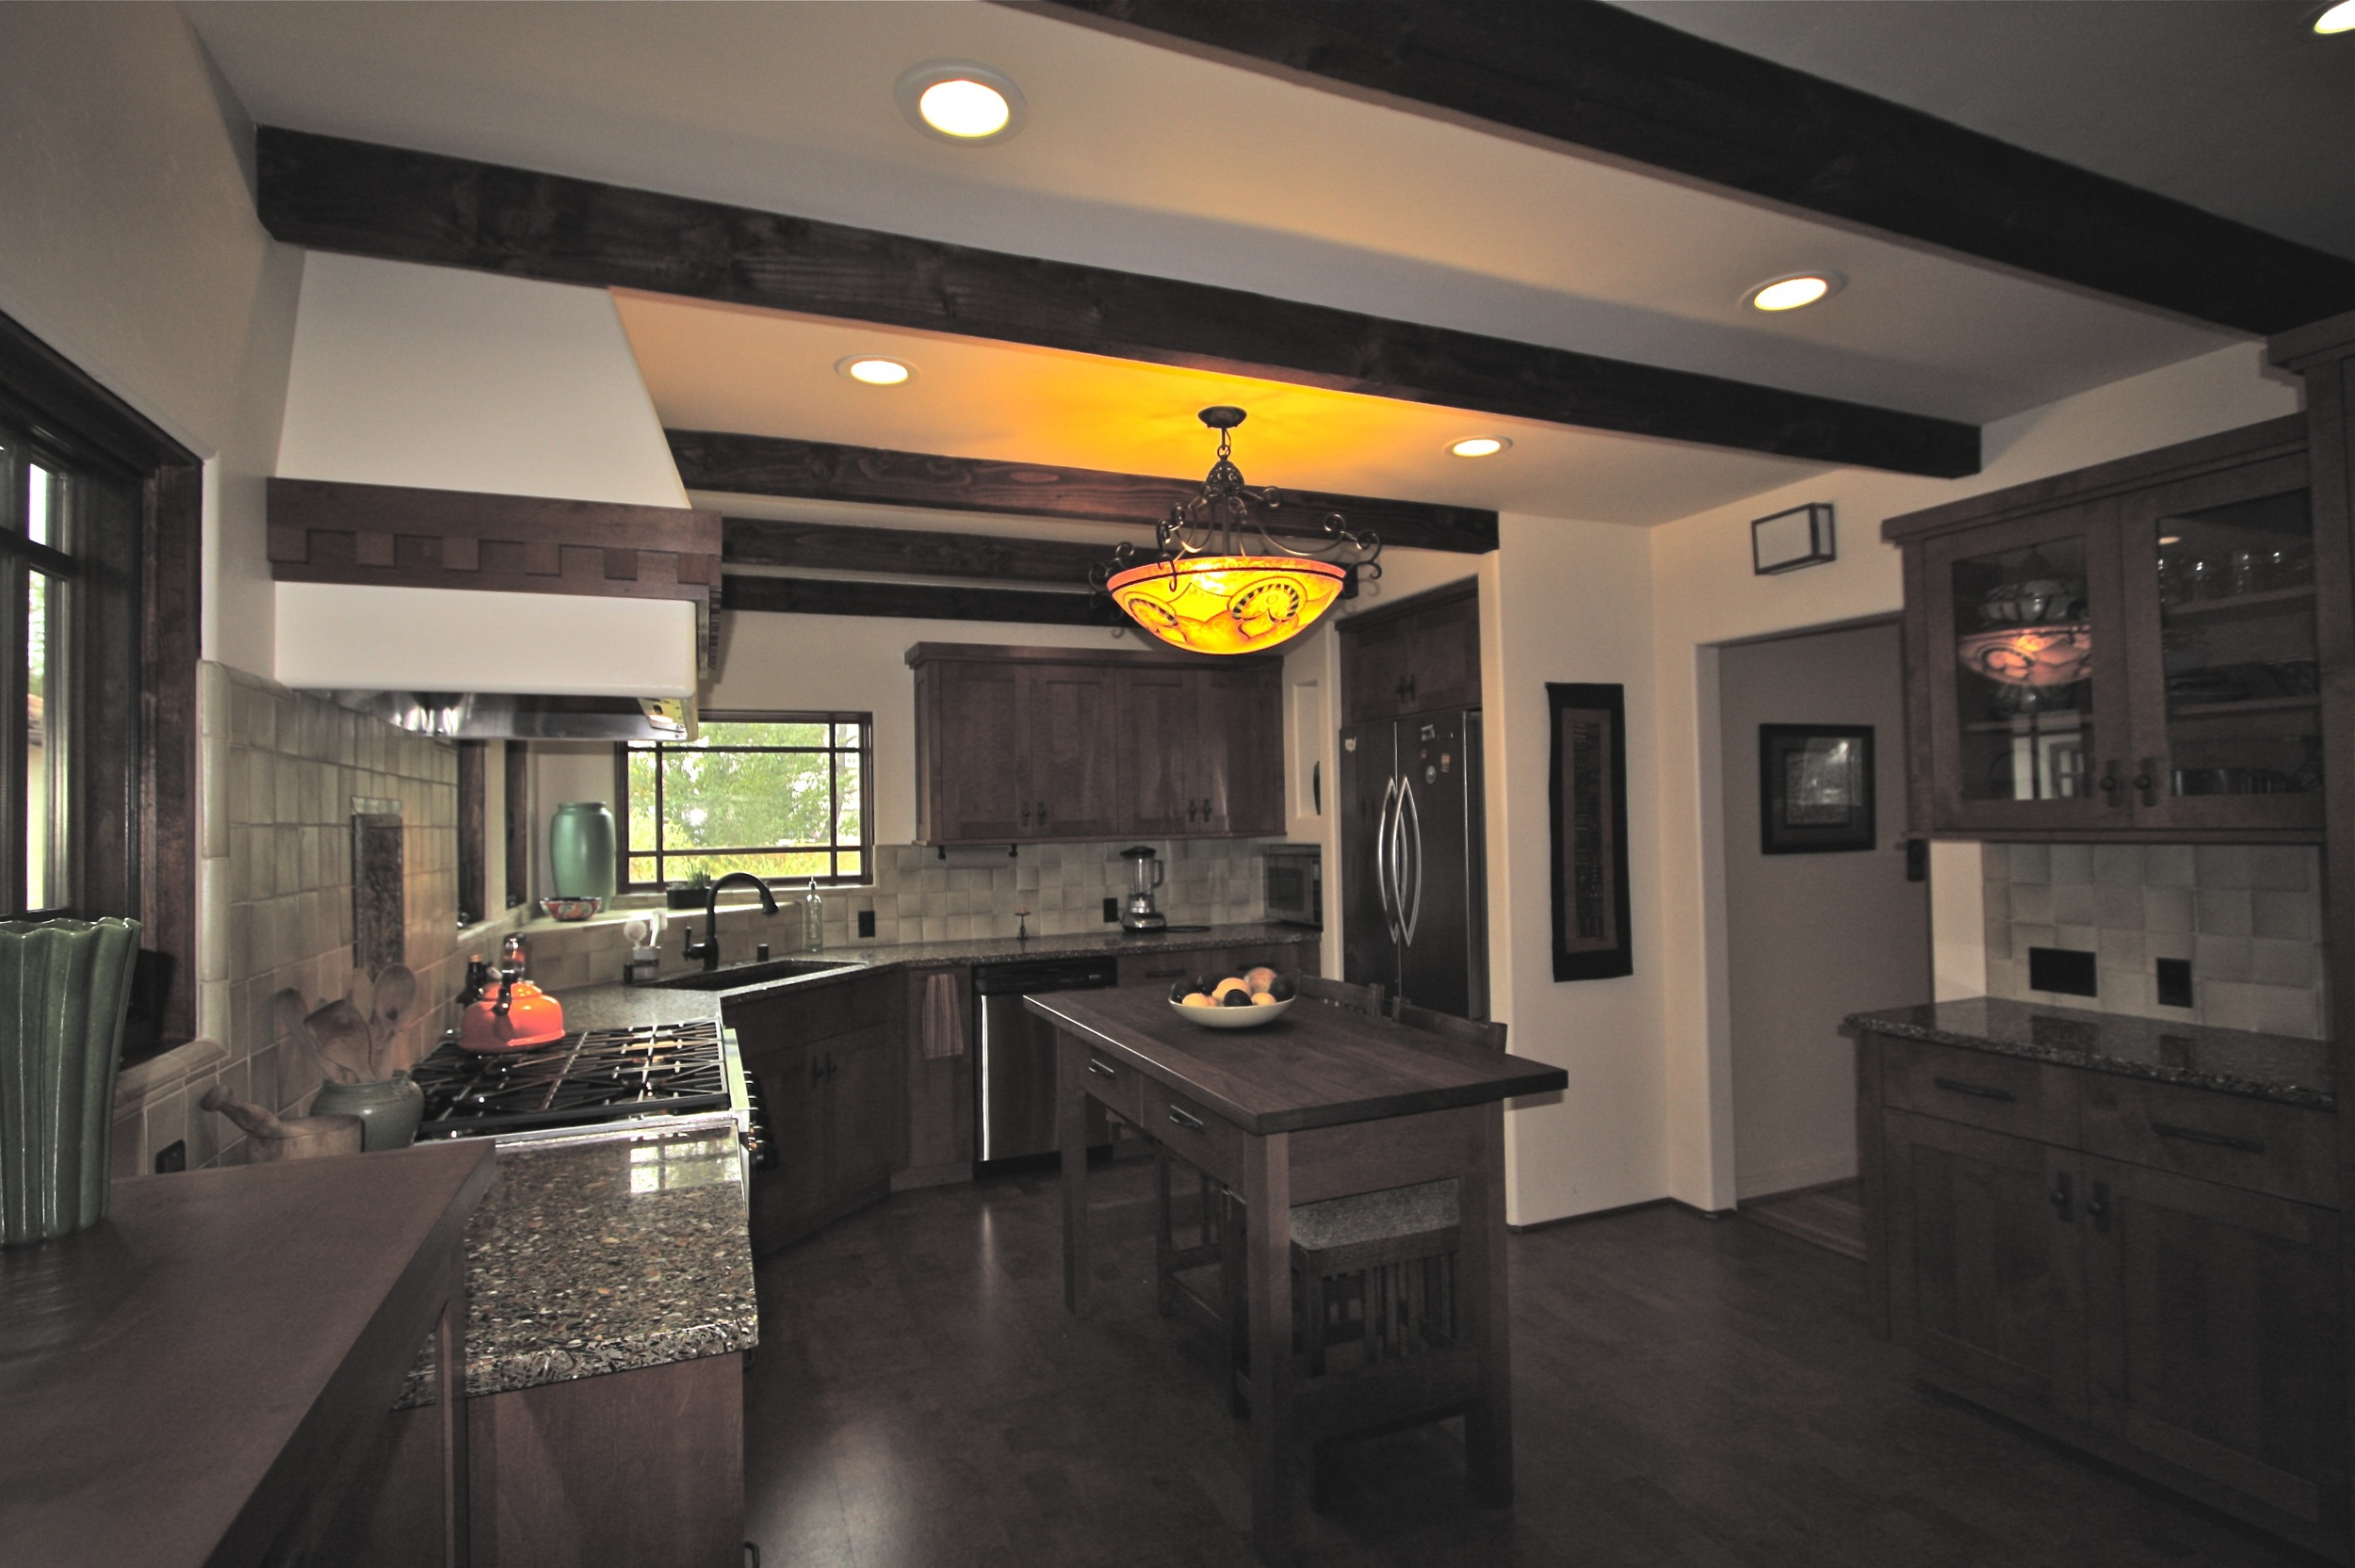 EAB Traditional Style Kitchen Remodel 1.jpg